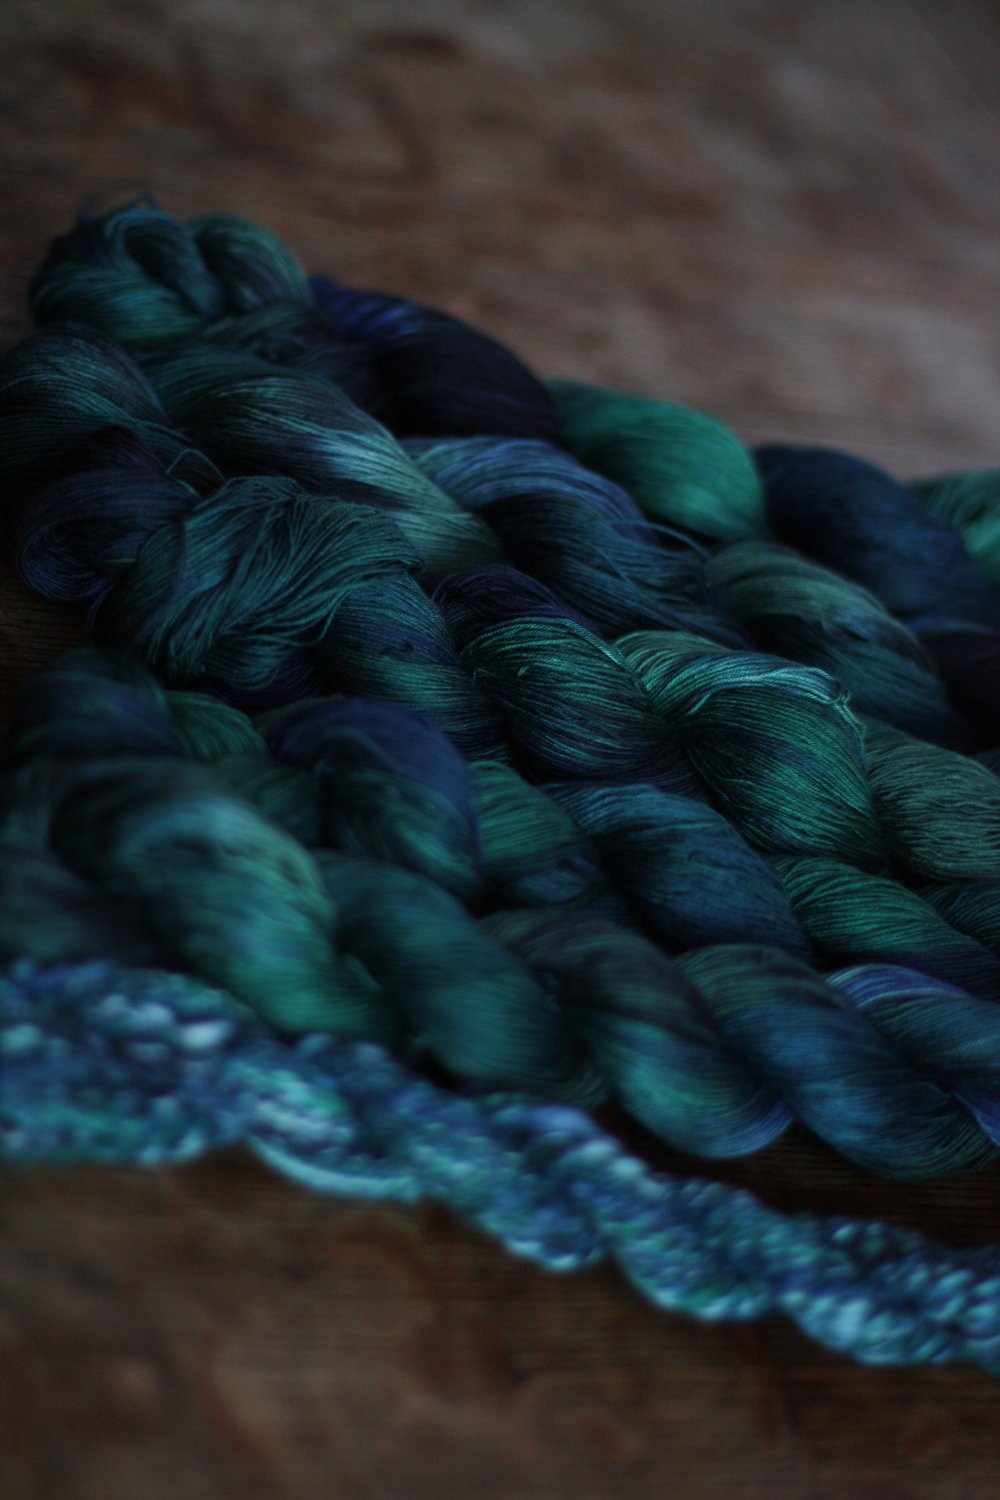 Skeins of Seacell dyed in moody blues and greens and teals and blacks rest on a wooden table | 14 Mile Farm Handweaving and Homesteading